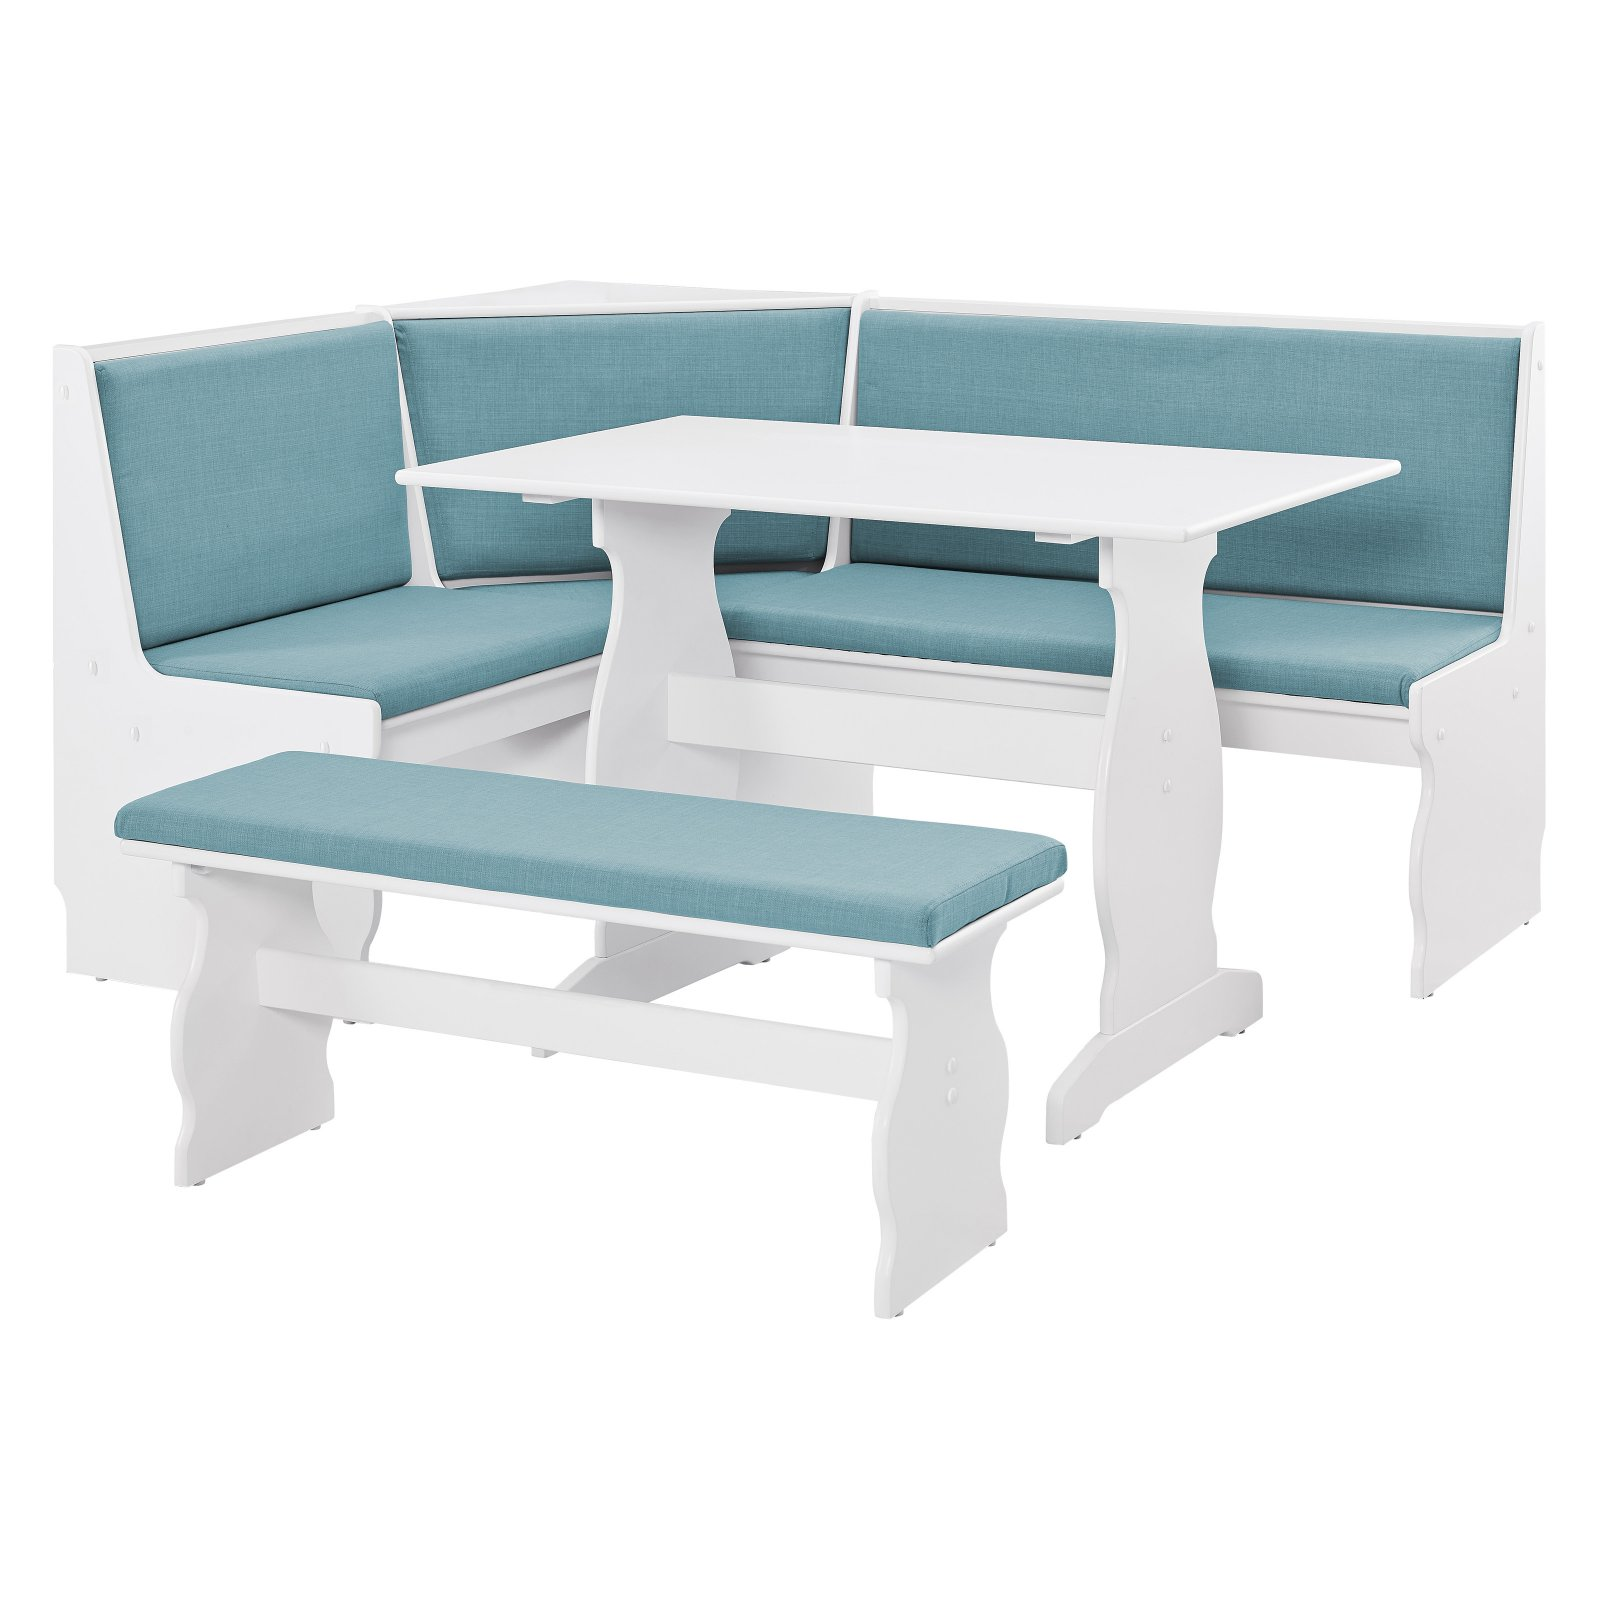 Linon Sasha Capri Nook, Blue And White, Includes Corner Unit, Table And  Bench